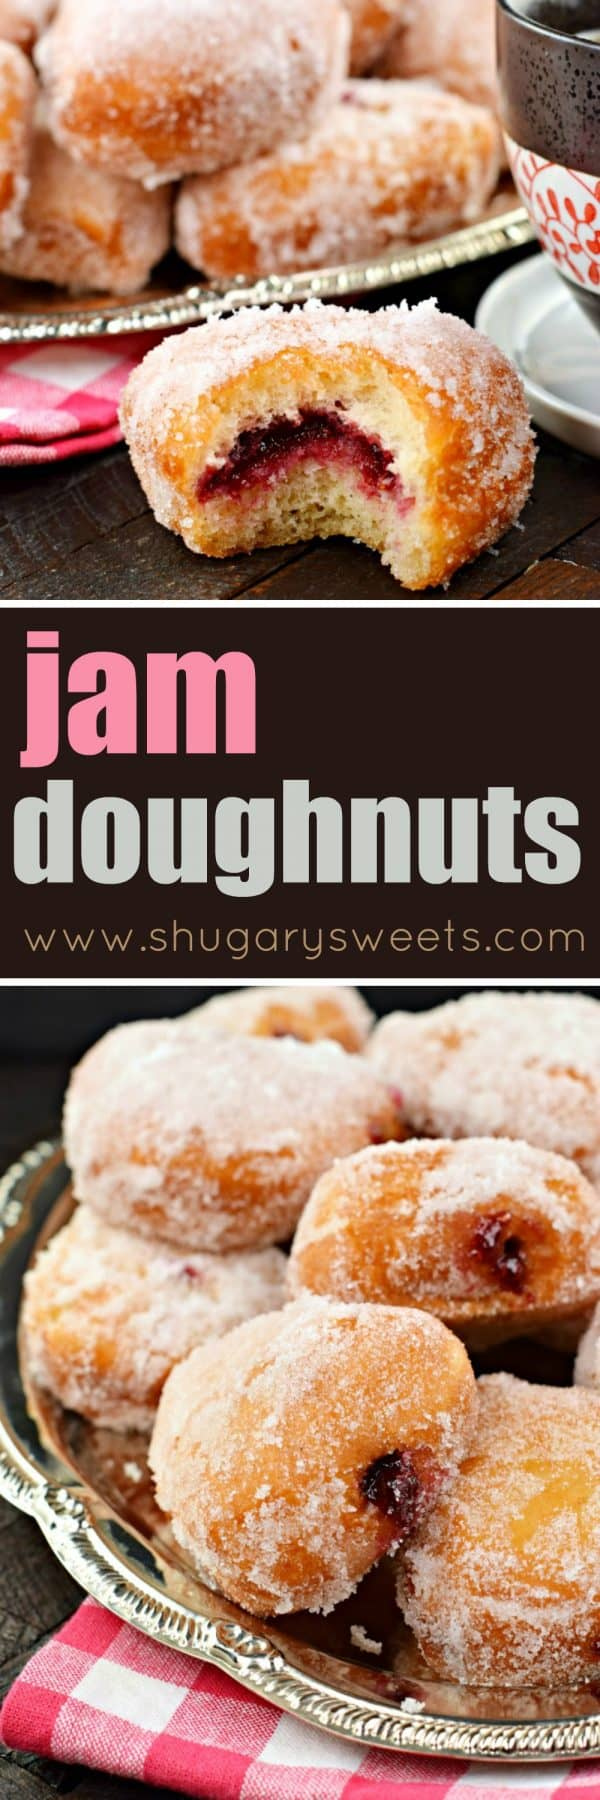 Jam filled Doughnuts #breakfast #doughnuts #donuts #princesscruises #ad #pastries #fromscratch #bakingrecipes